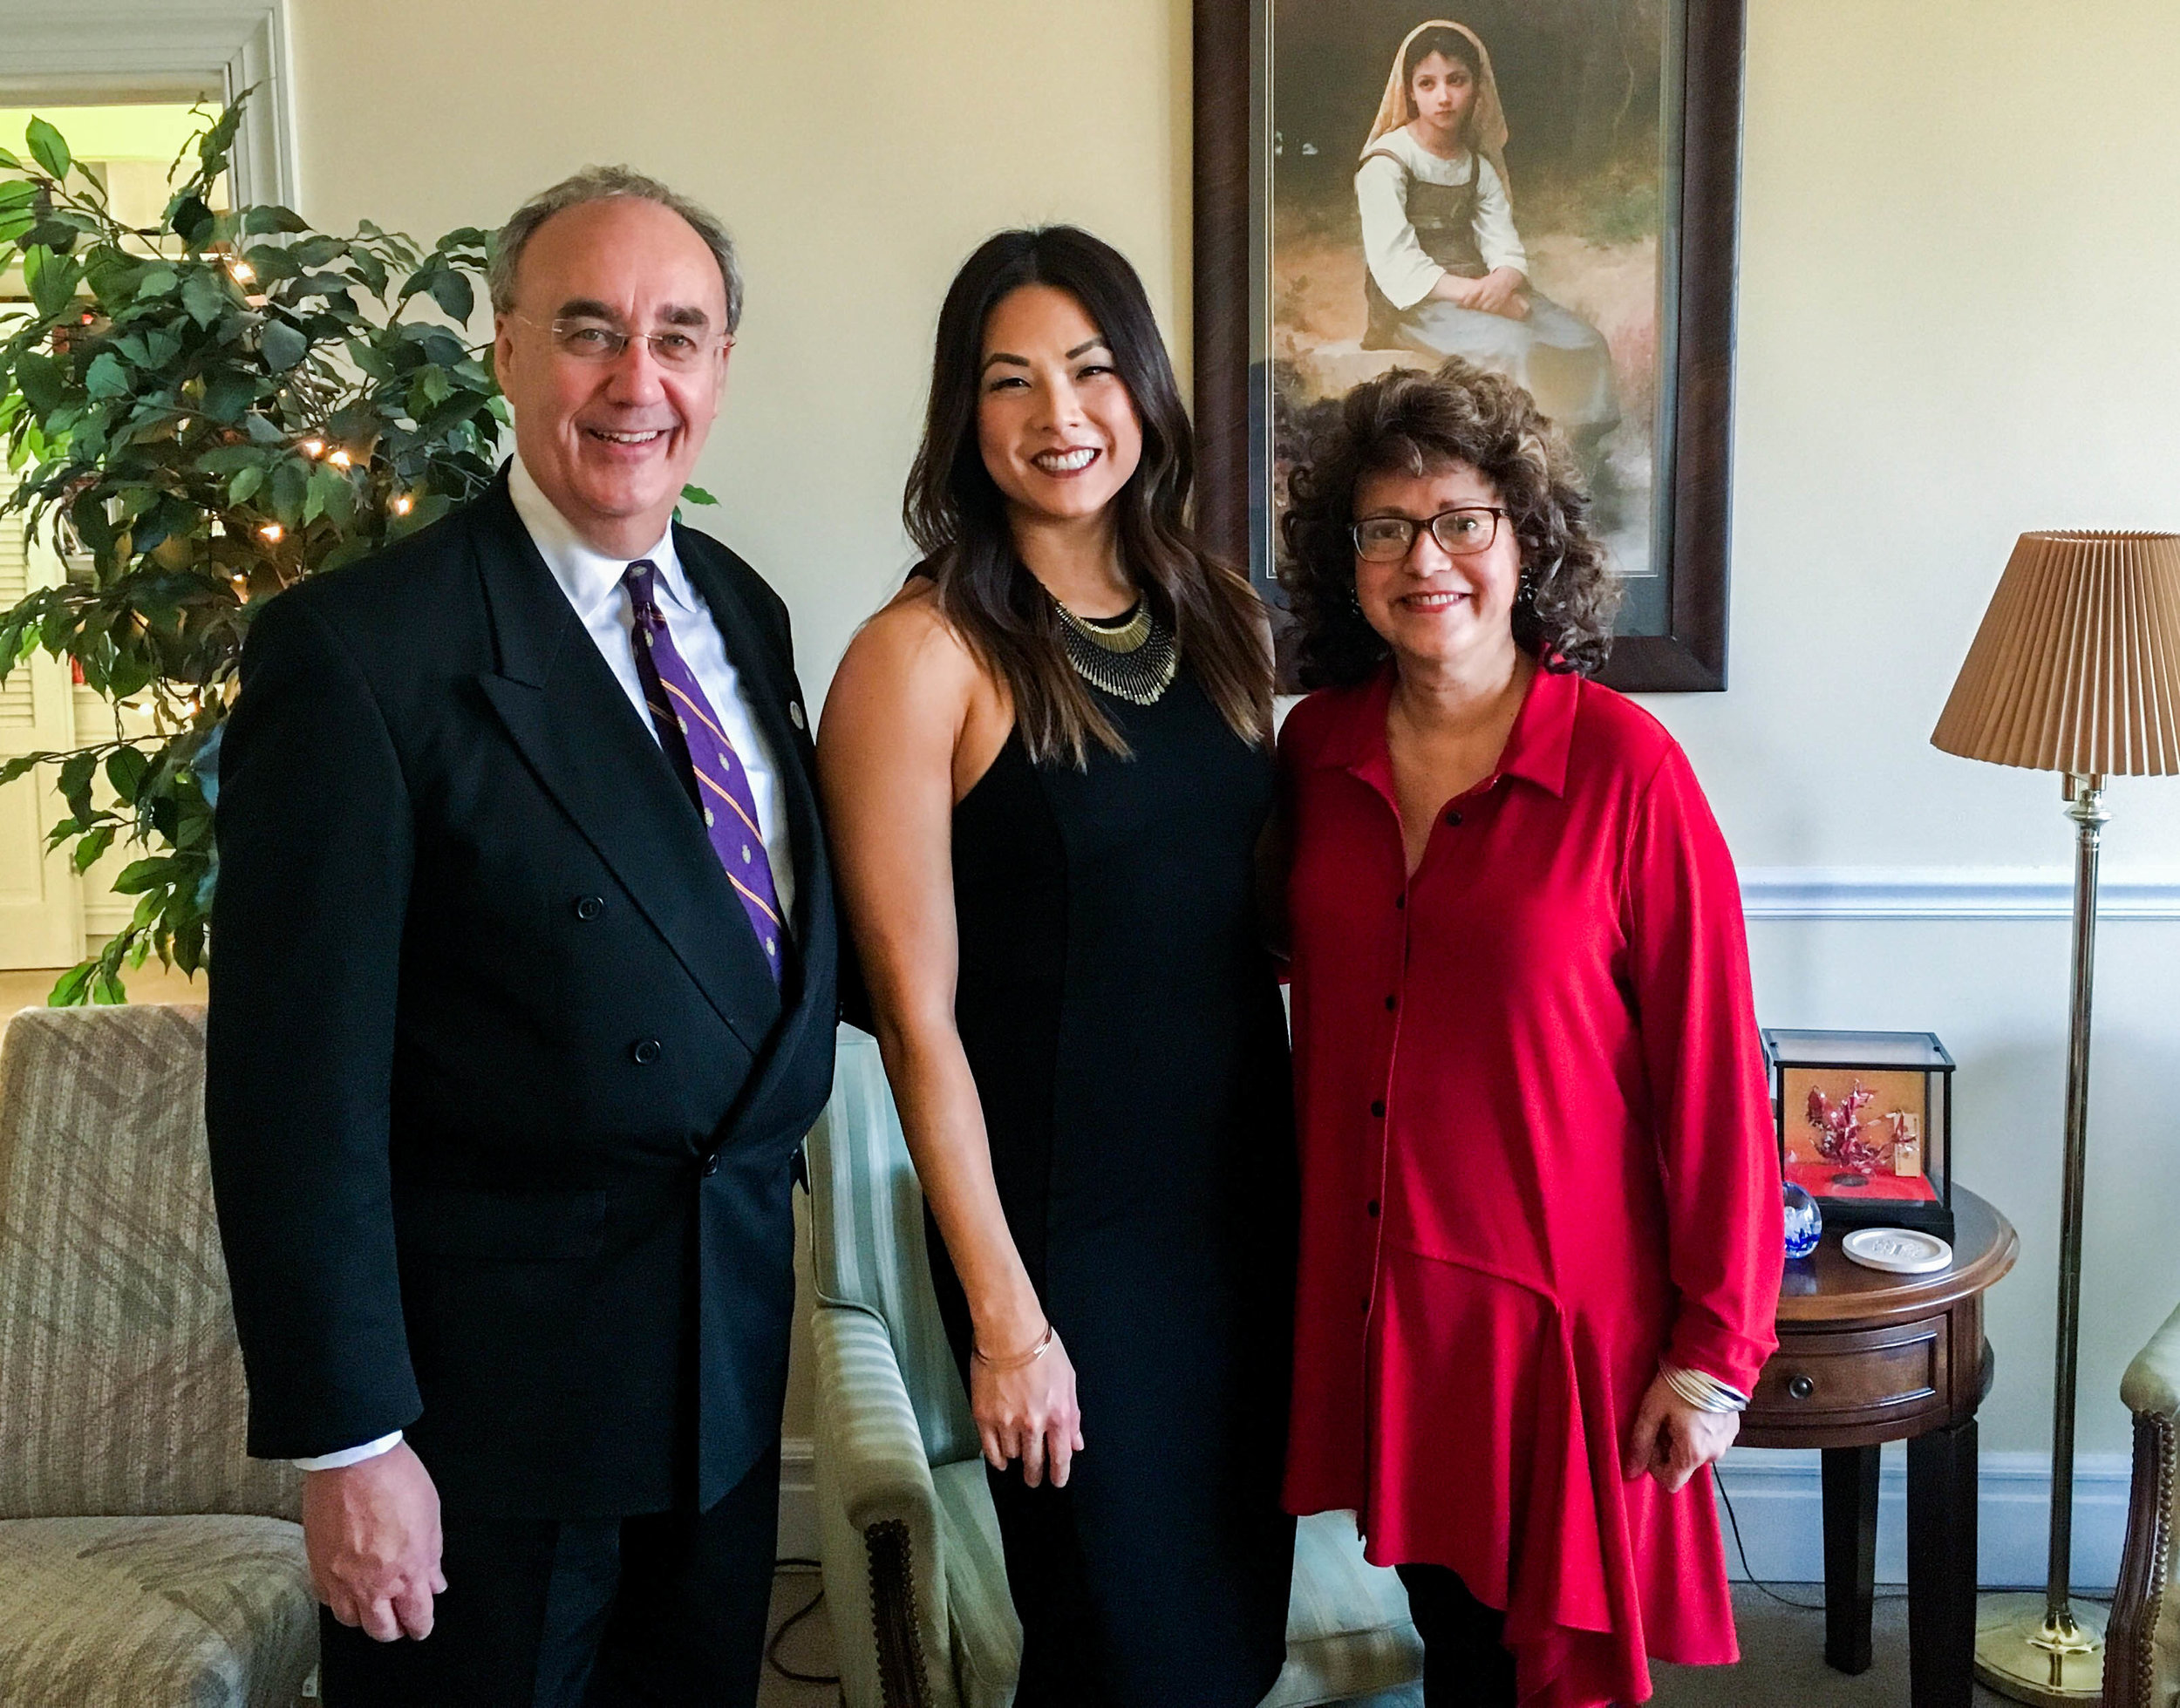 Mayor Mike Inman and his wife, Melissa, hosted the judges' dinner at their home.